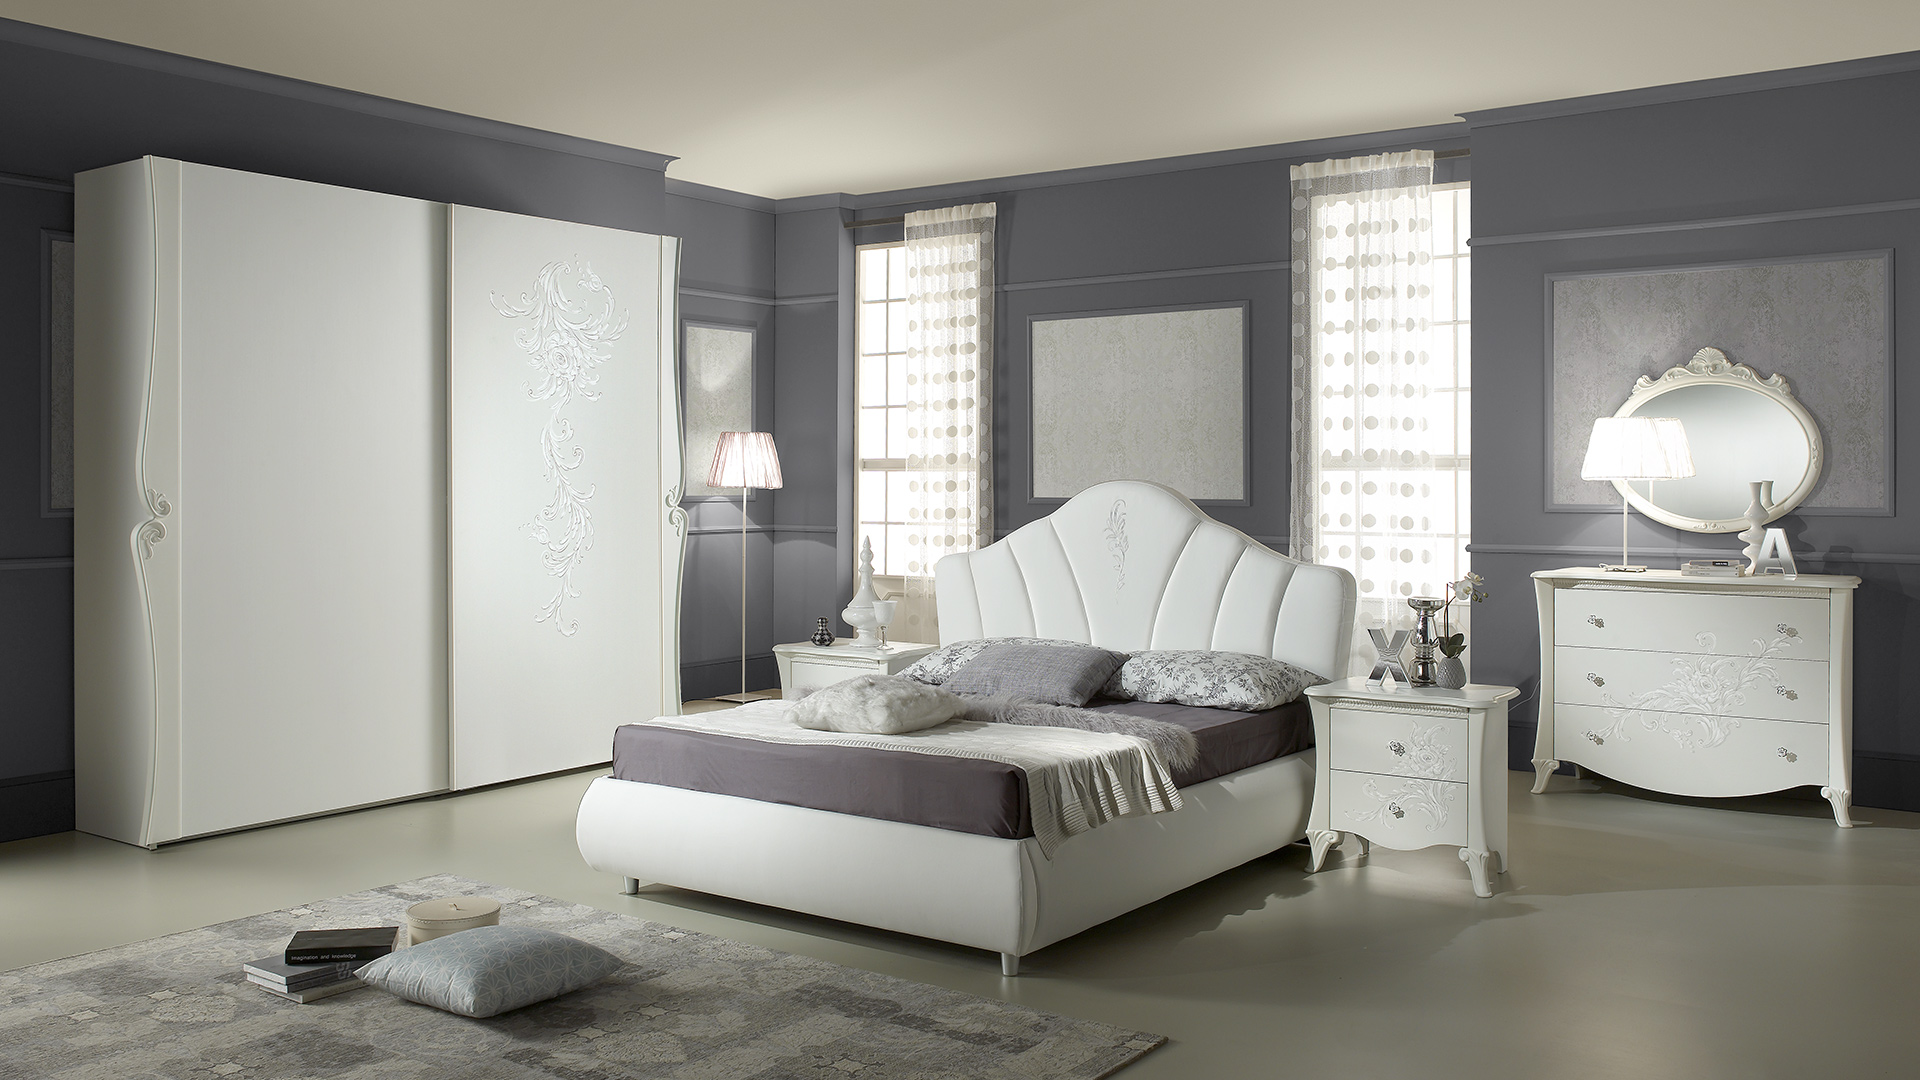 doris weiss mit 2 trg schwebet renschrank schlafzimmer. Black Bedroom Furniture Sets. Home Design Ideas